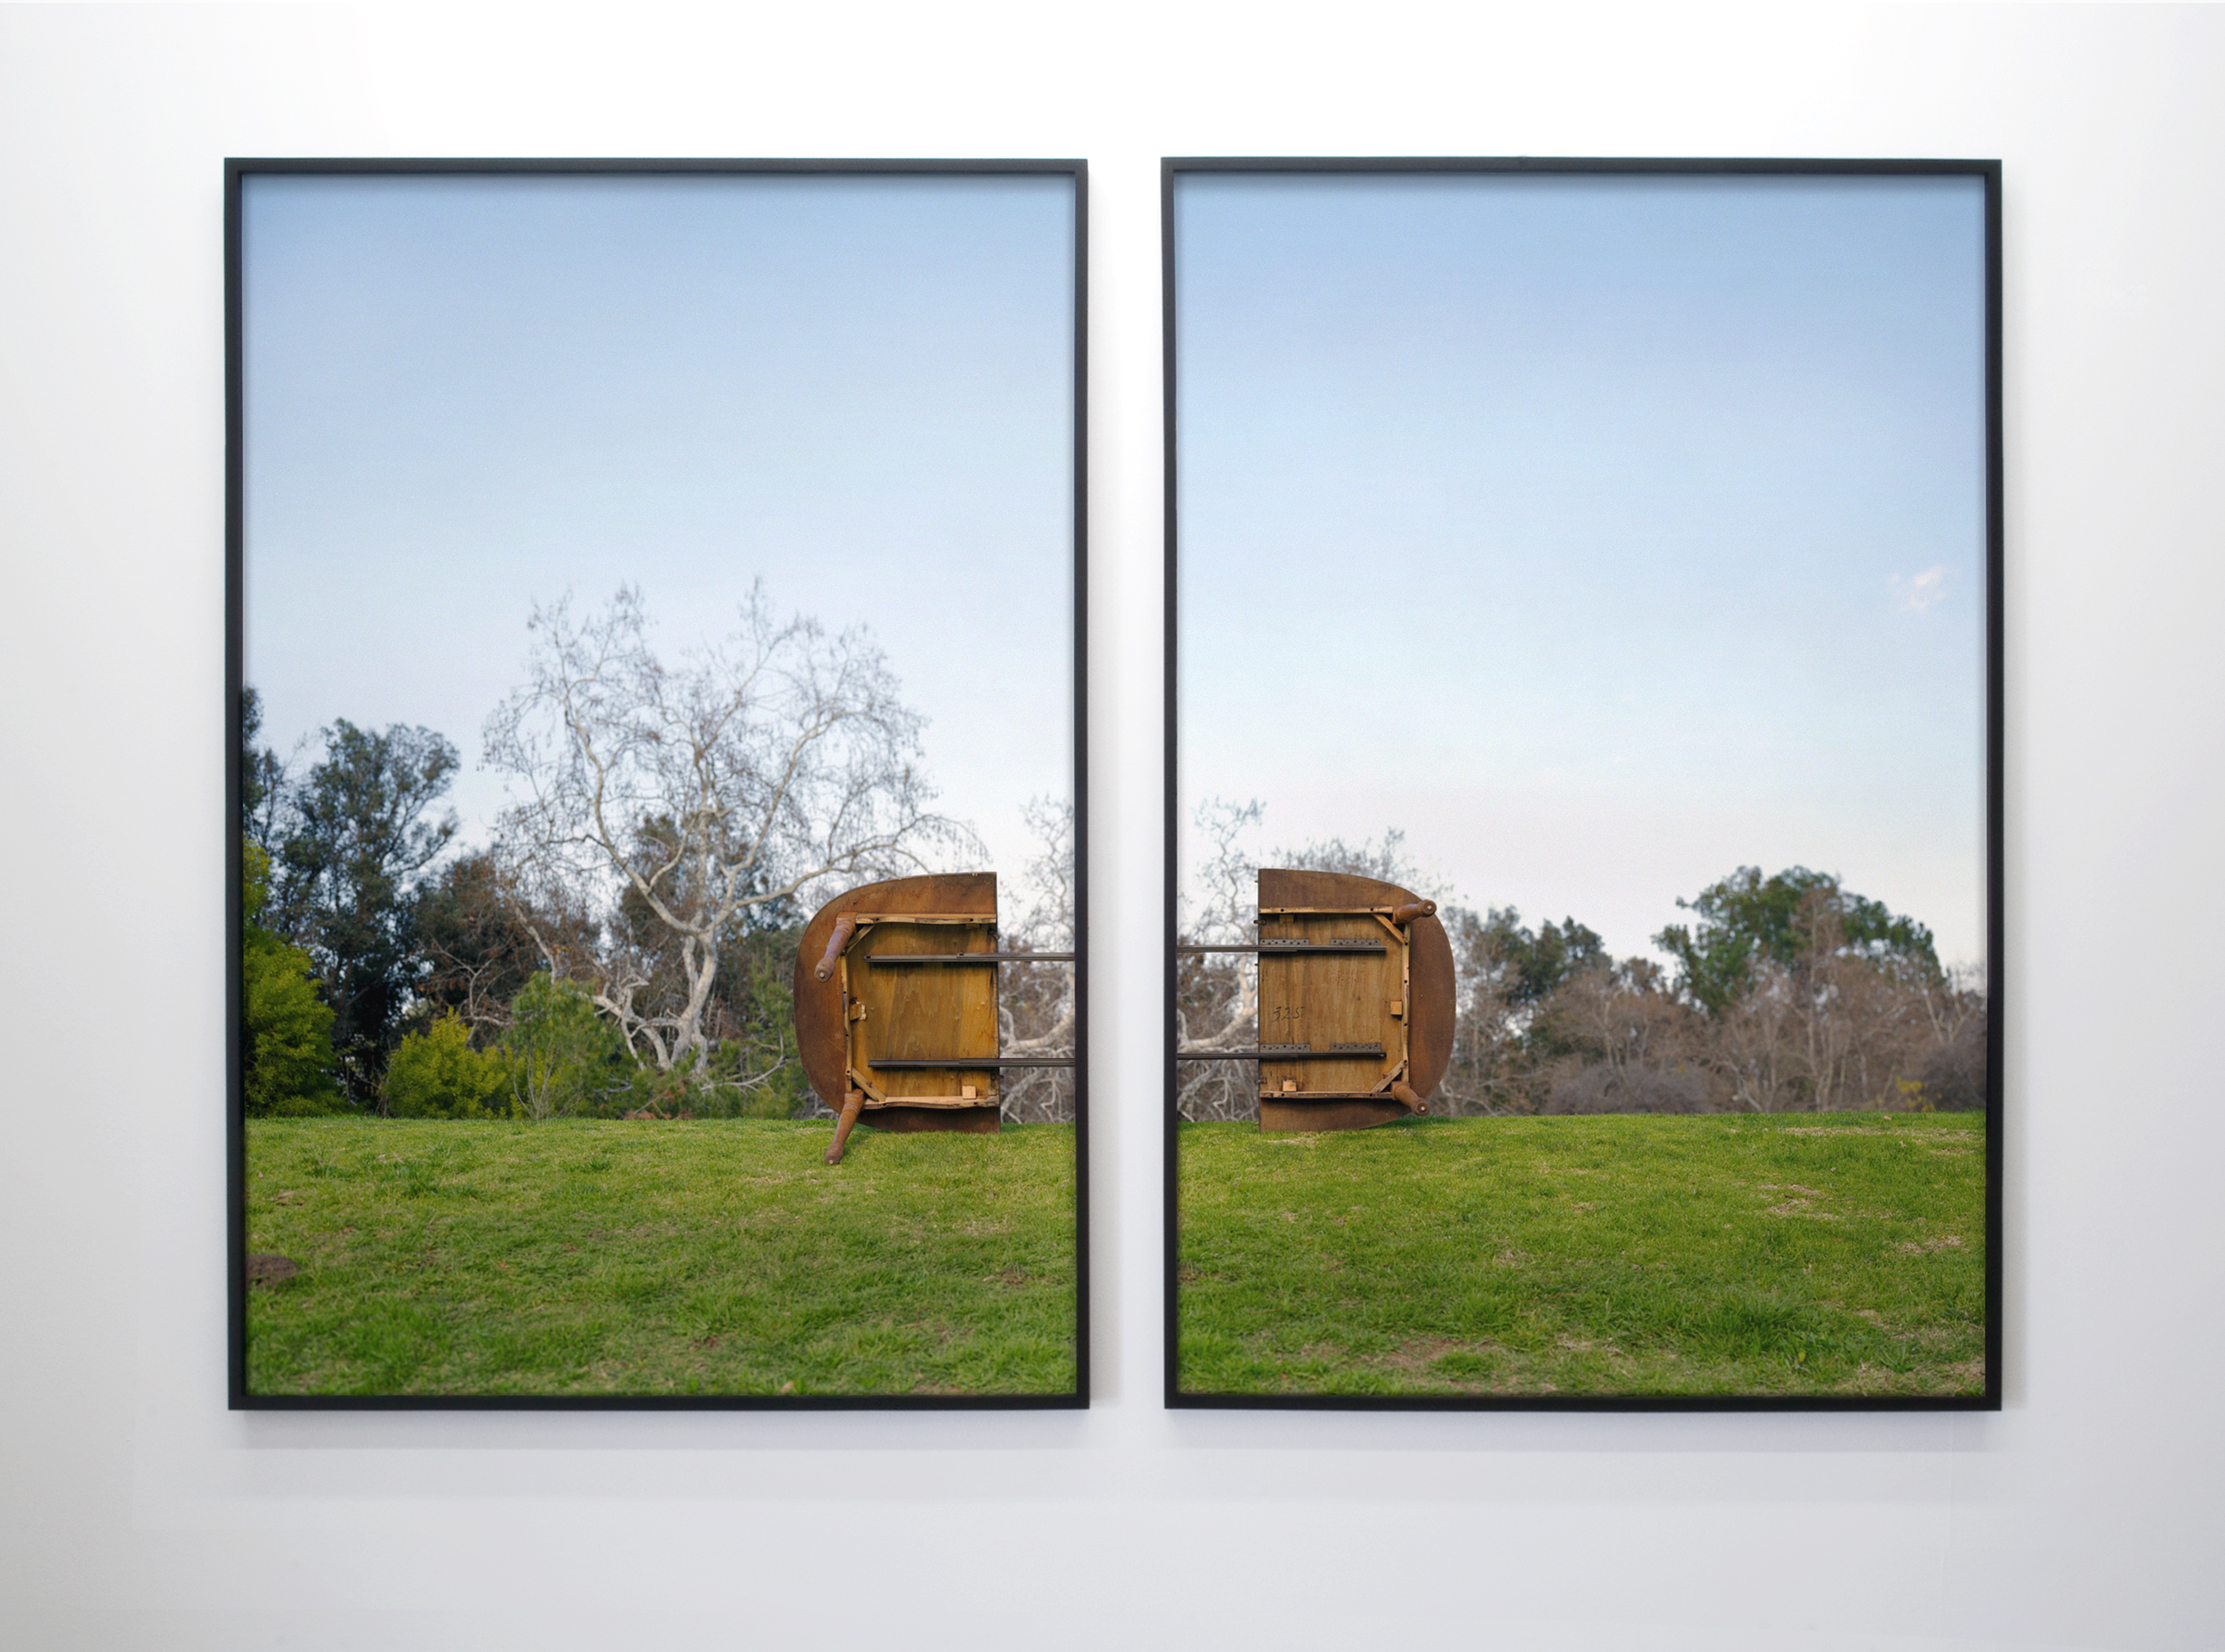 Exuviation Consort 2008 two chromogenic prints on acrylic with lacquer and maple frames